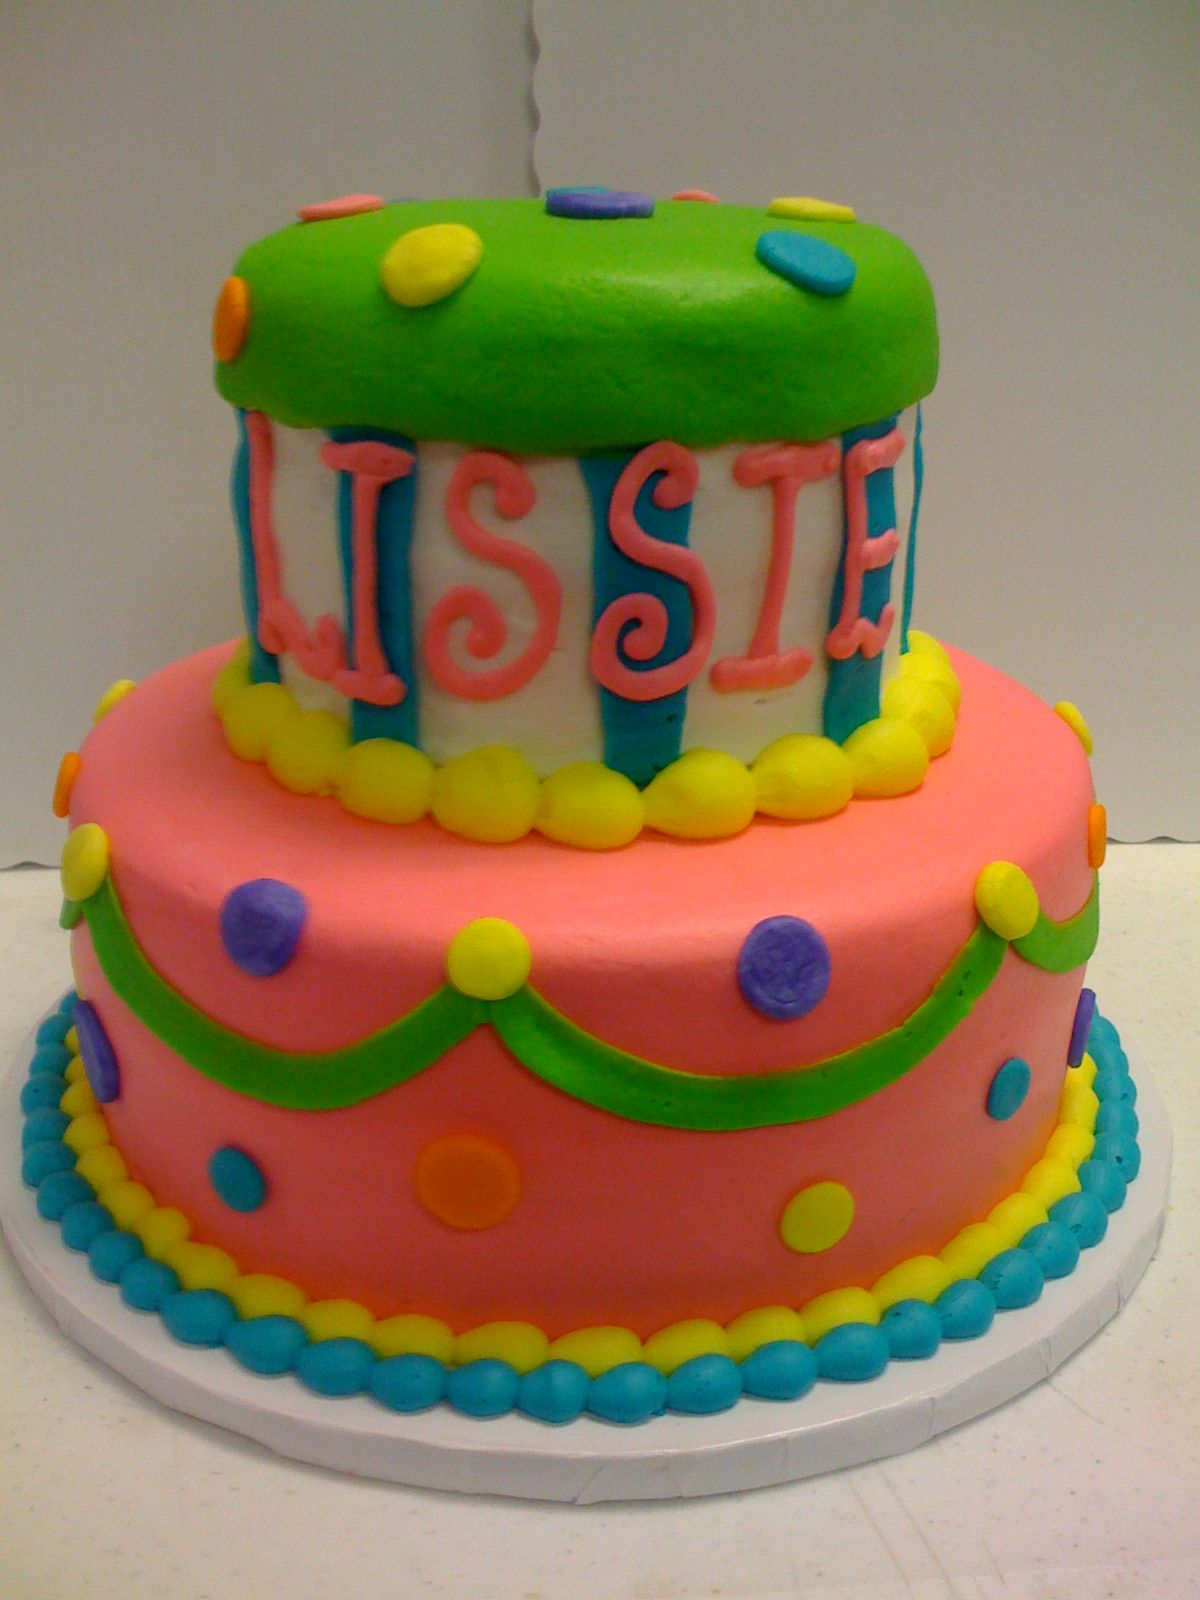 Sensational Cakes Candles 601 605 2646 Trace Station 500 Hwy 51 Suite H Funny Birthday Cards Online Alyptdamsfinfo